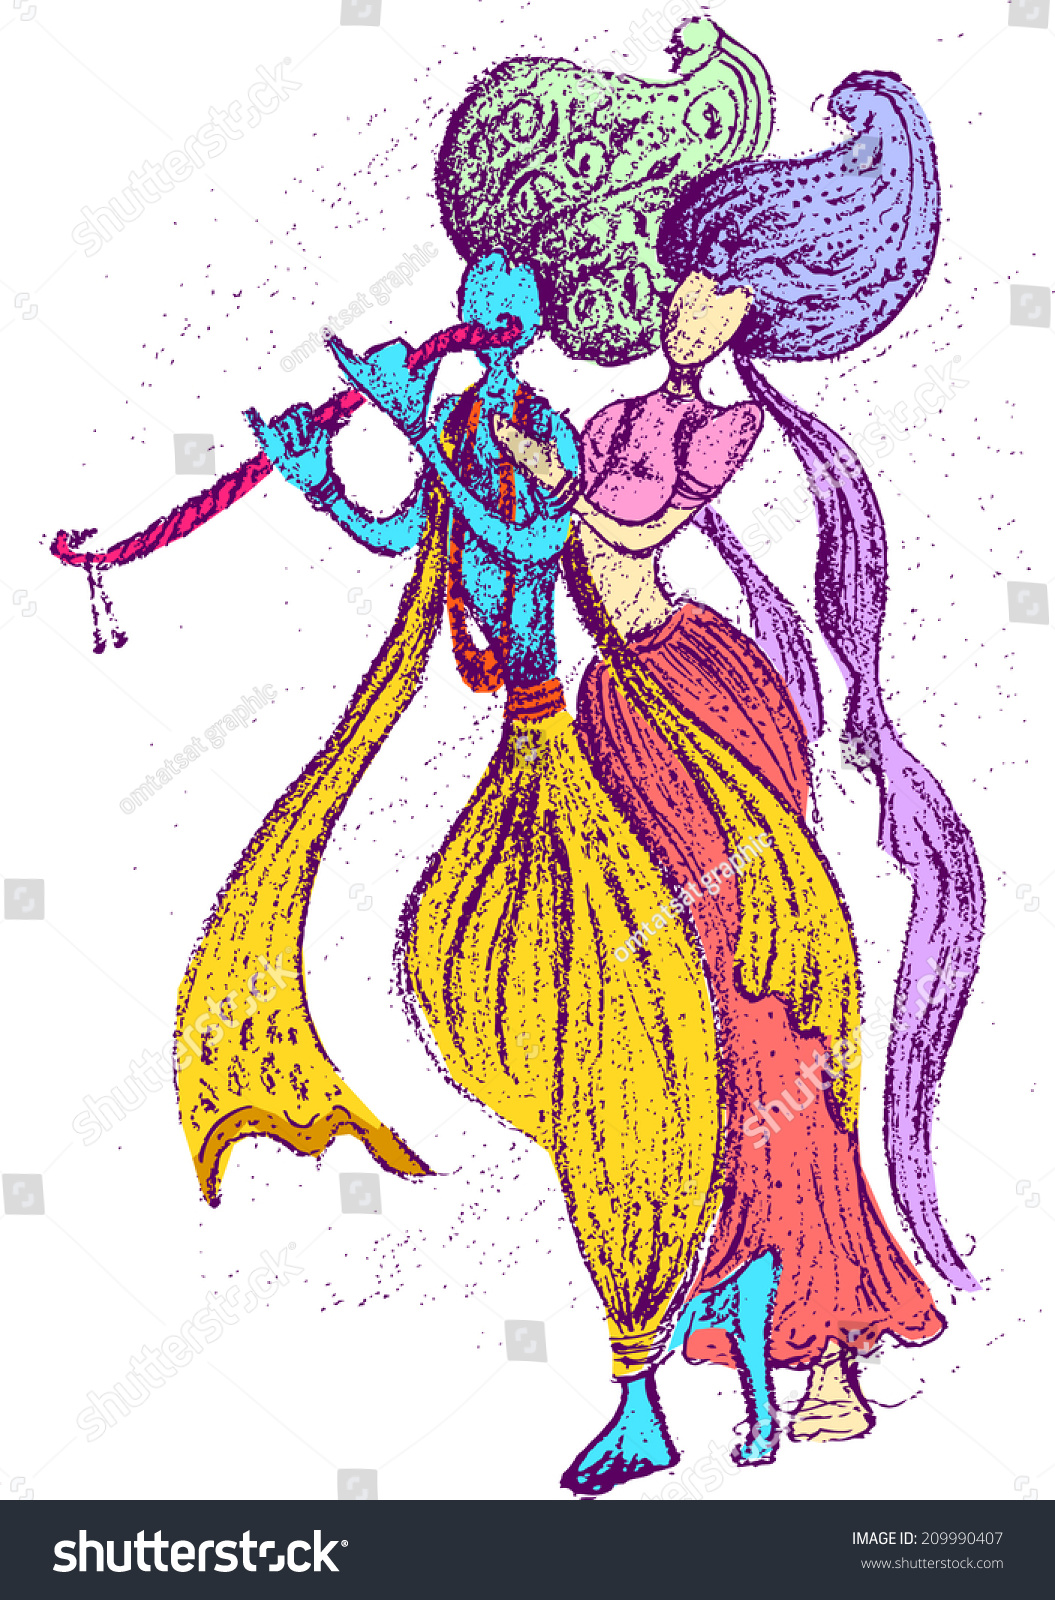 Lord Radha Krishna wall stickers Pictures for free download